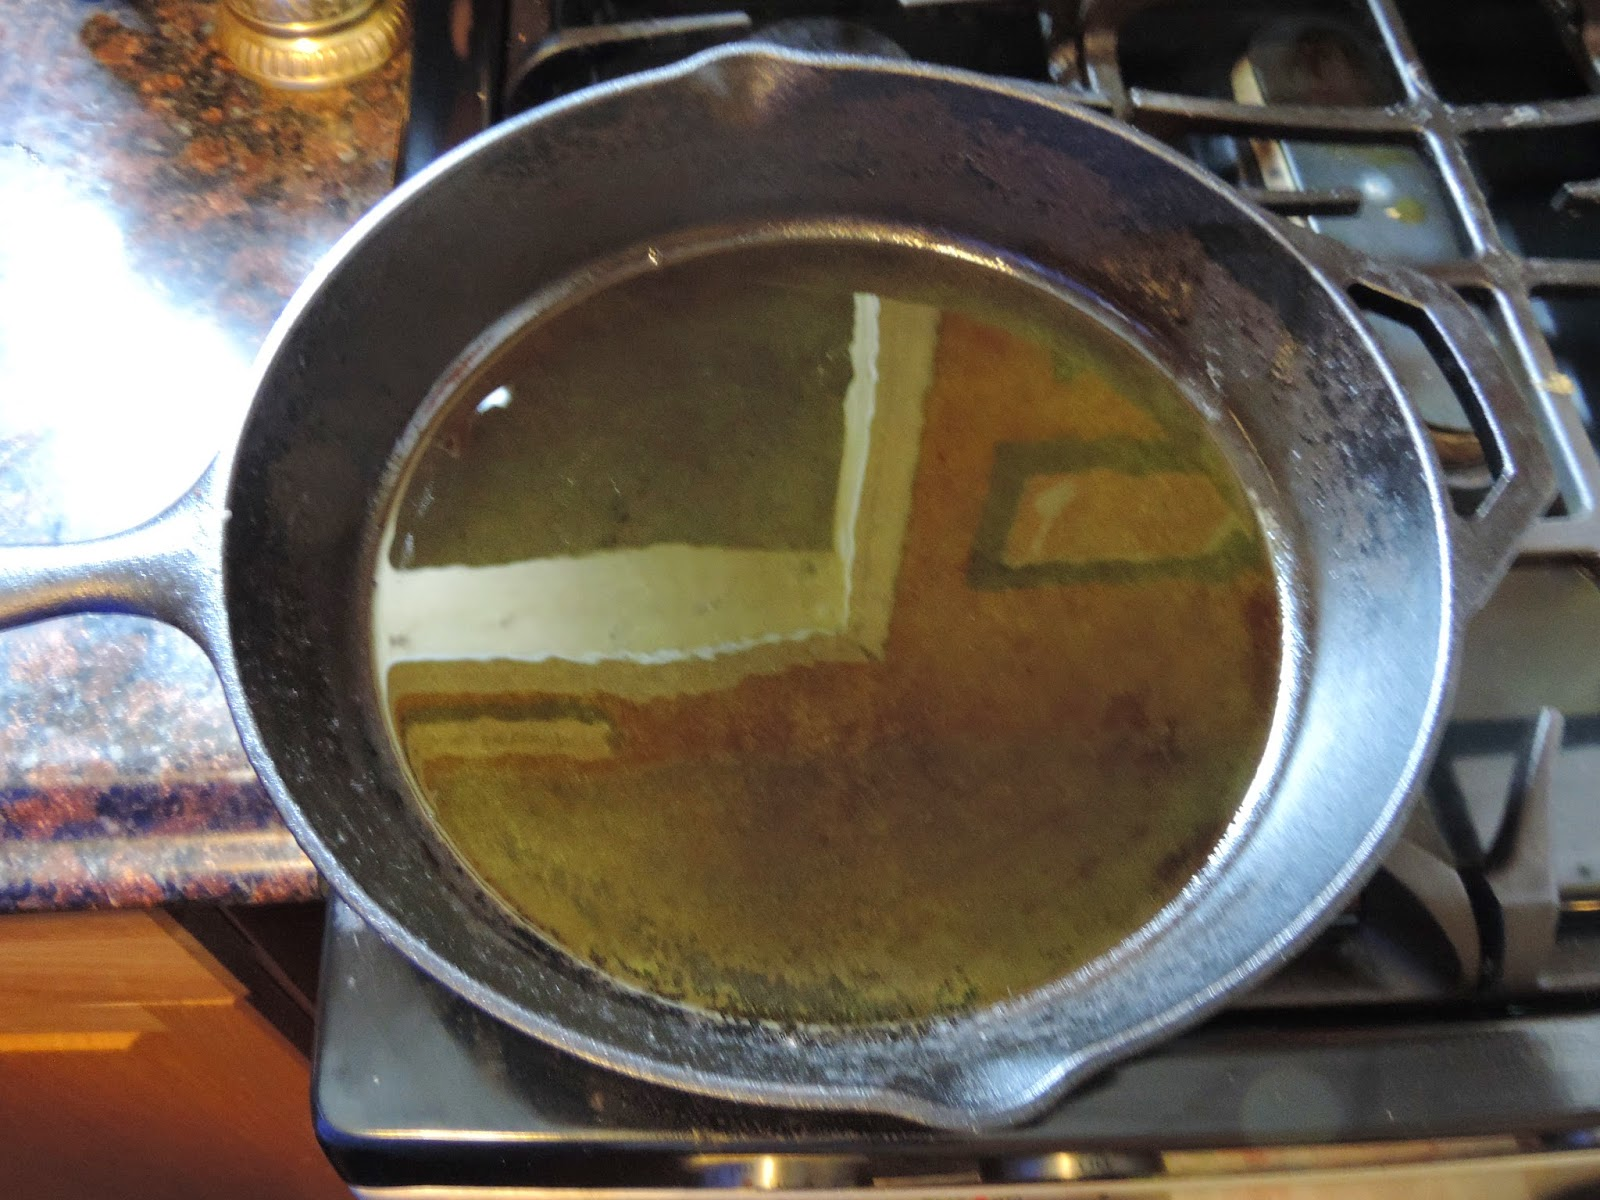 A cast iron skillet, on the stove, with oil in it.